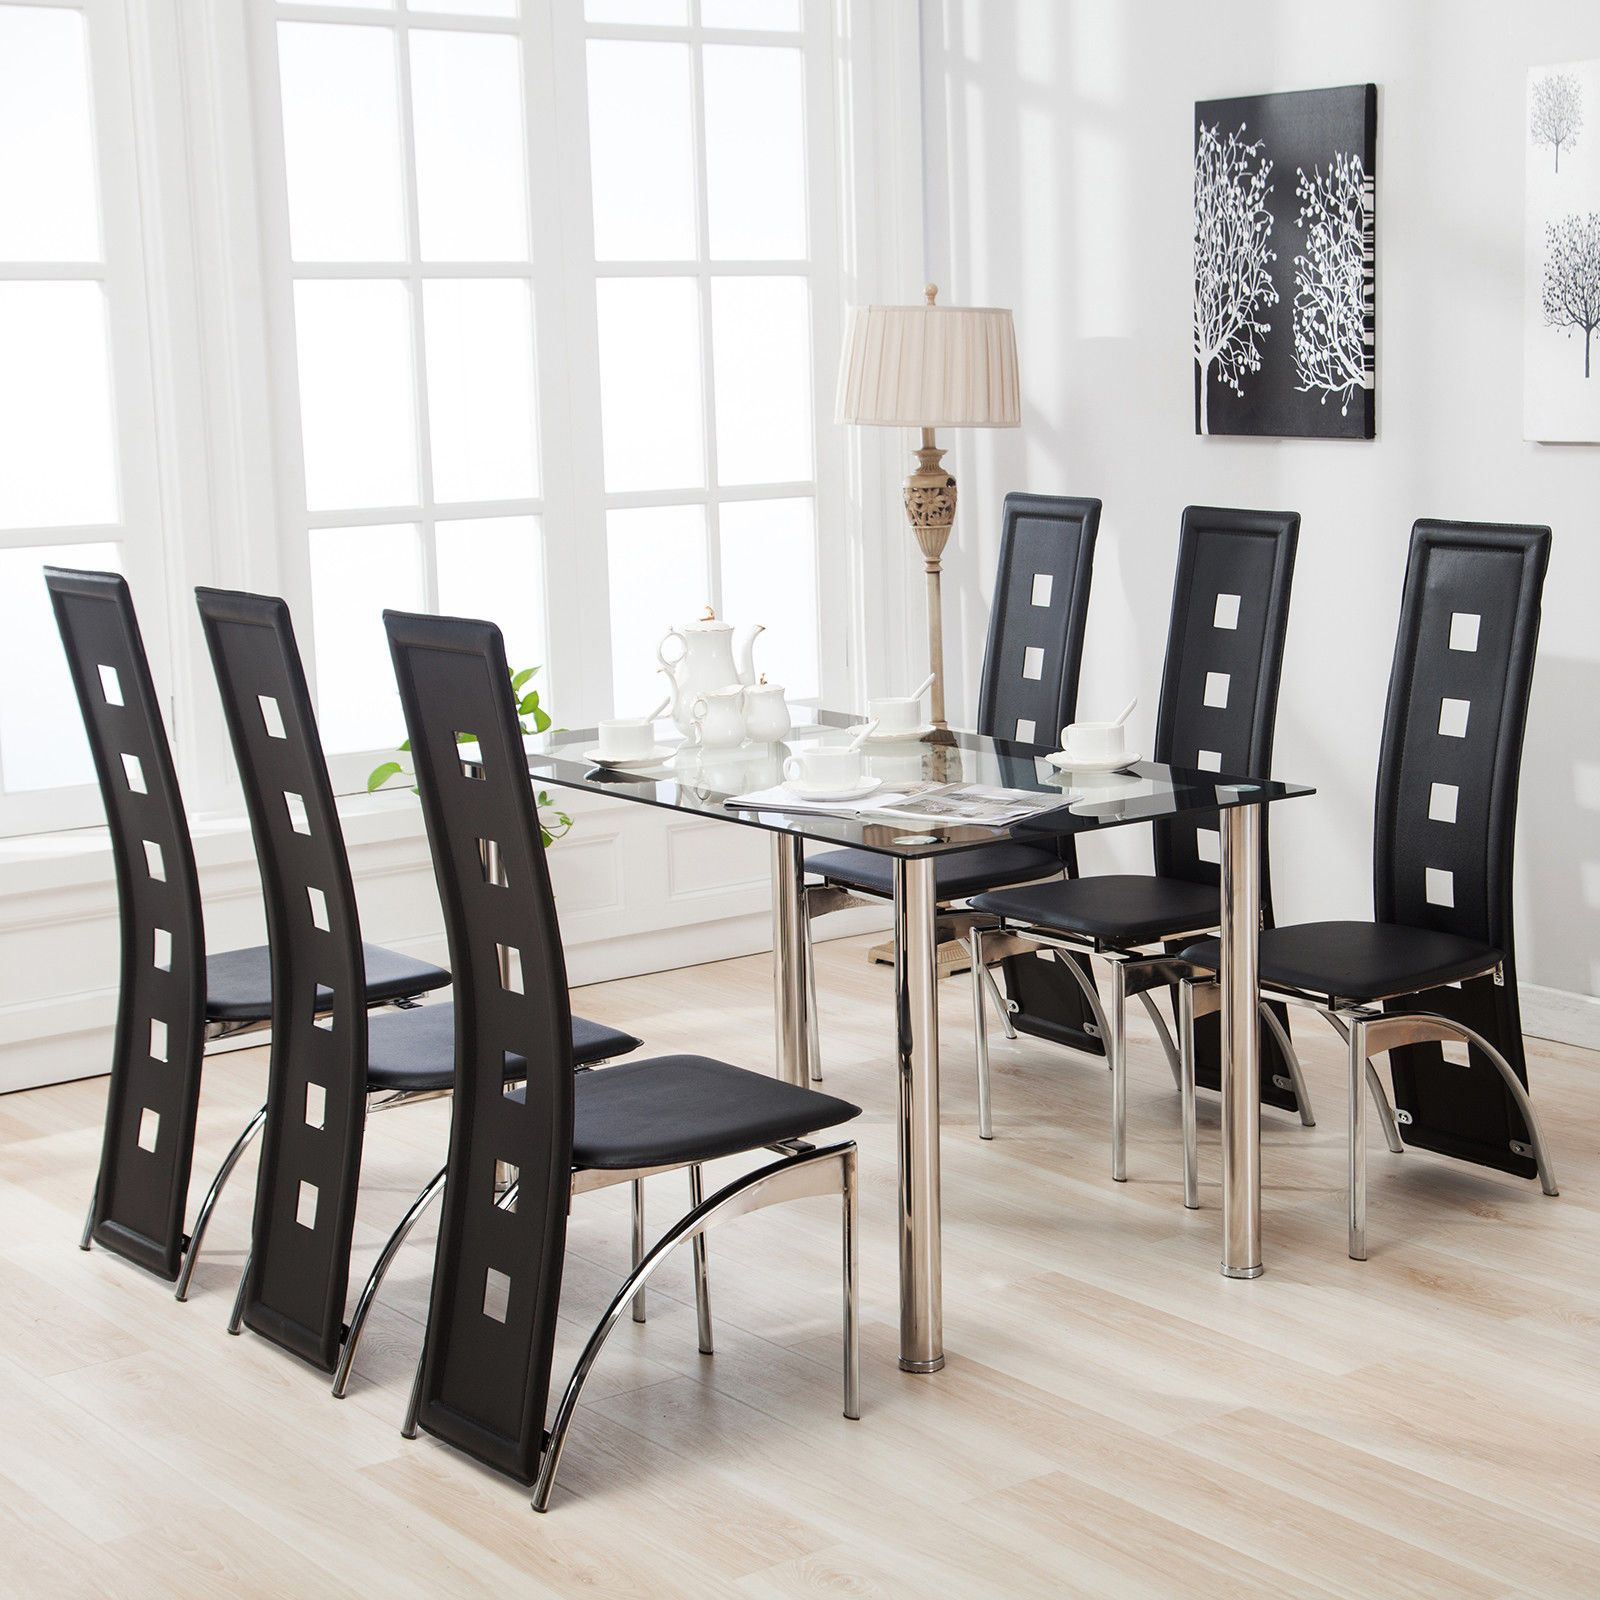 Modern Dining Table 7 Piece Dining Table Set And 6 Chairs Black Glass Metal Kitchen Roo Glass Dining Room Table Kitchen Table Settings Glass Dining Table Set